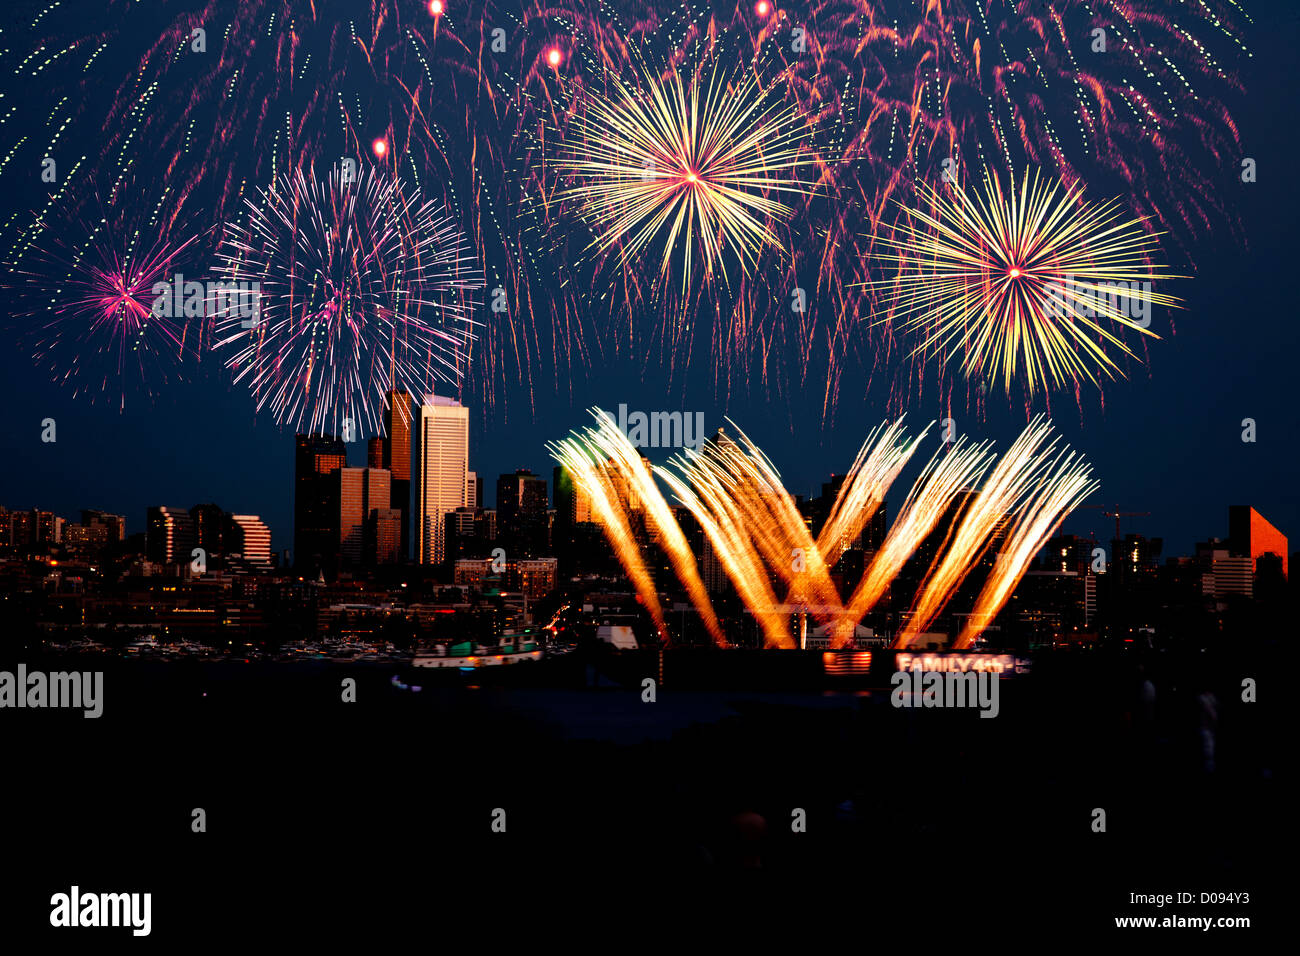 WA06702-00...WASHINGTON - Fourth of July fireworks over Lake Union in Seattle. - Stock Image